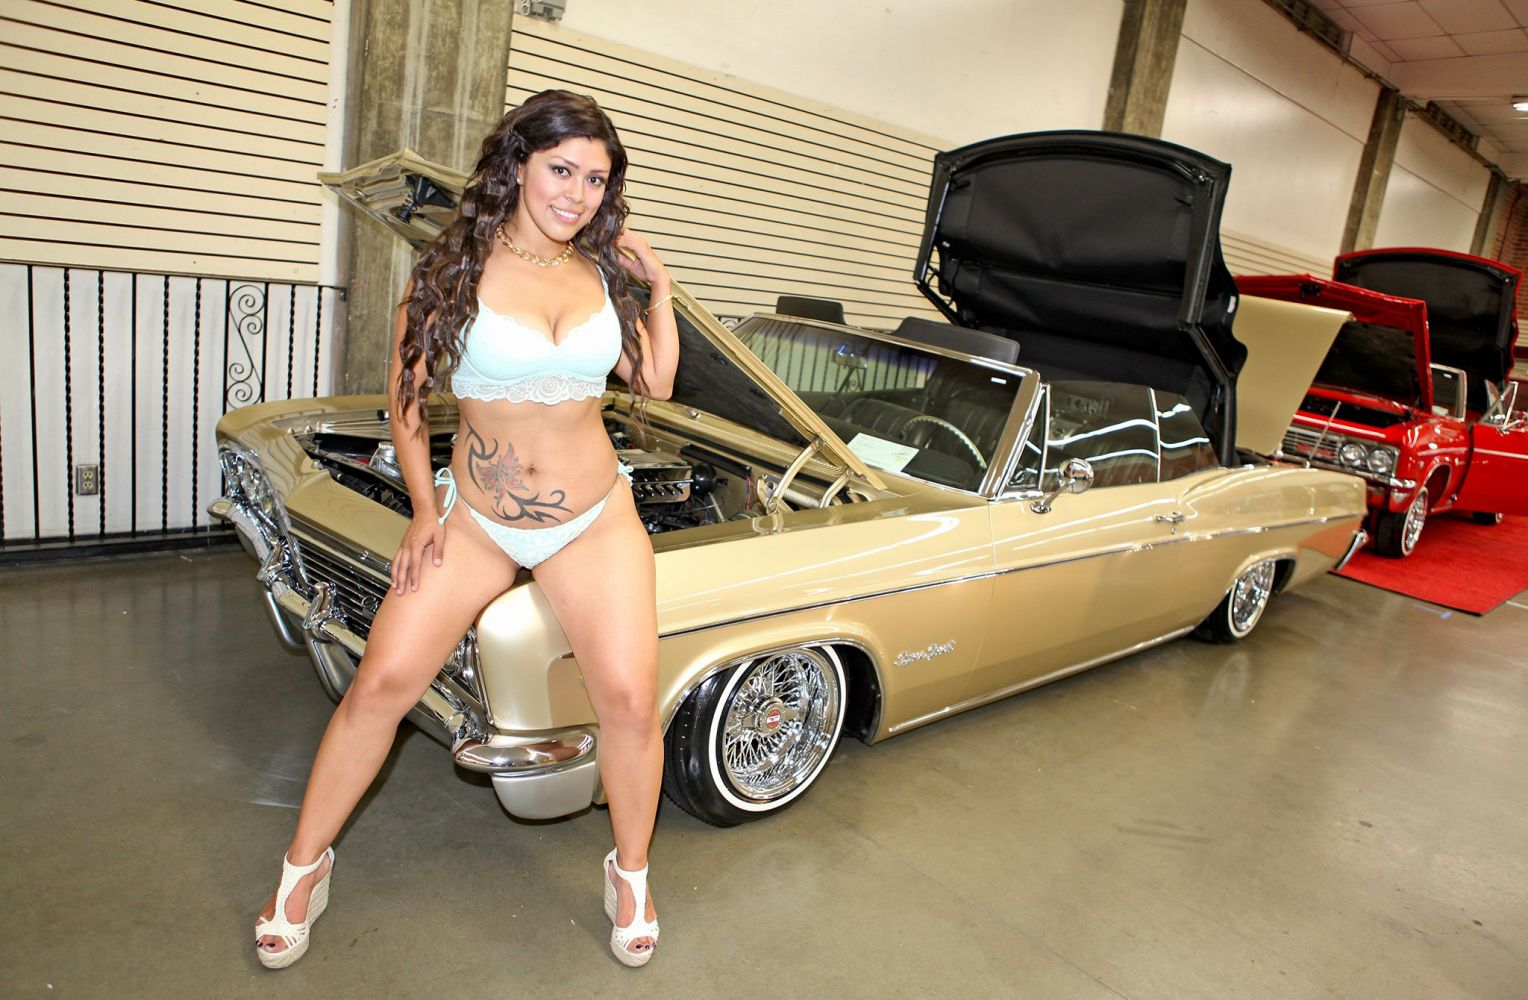 Topless lowrider chick 14